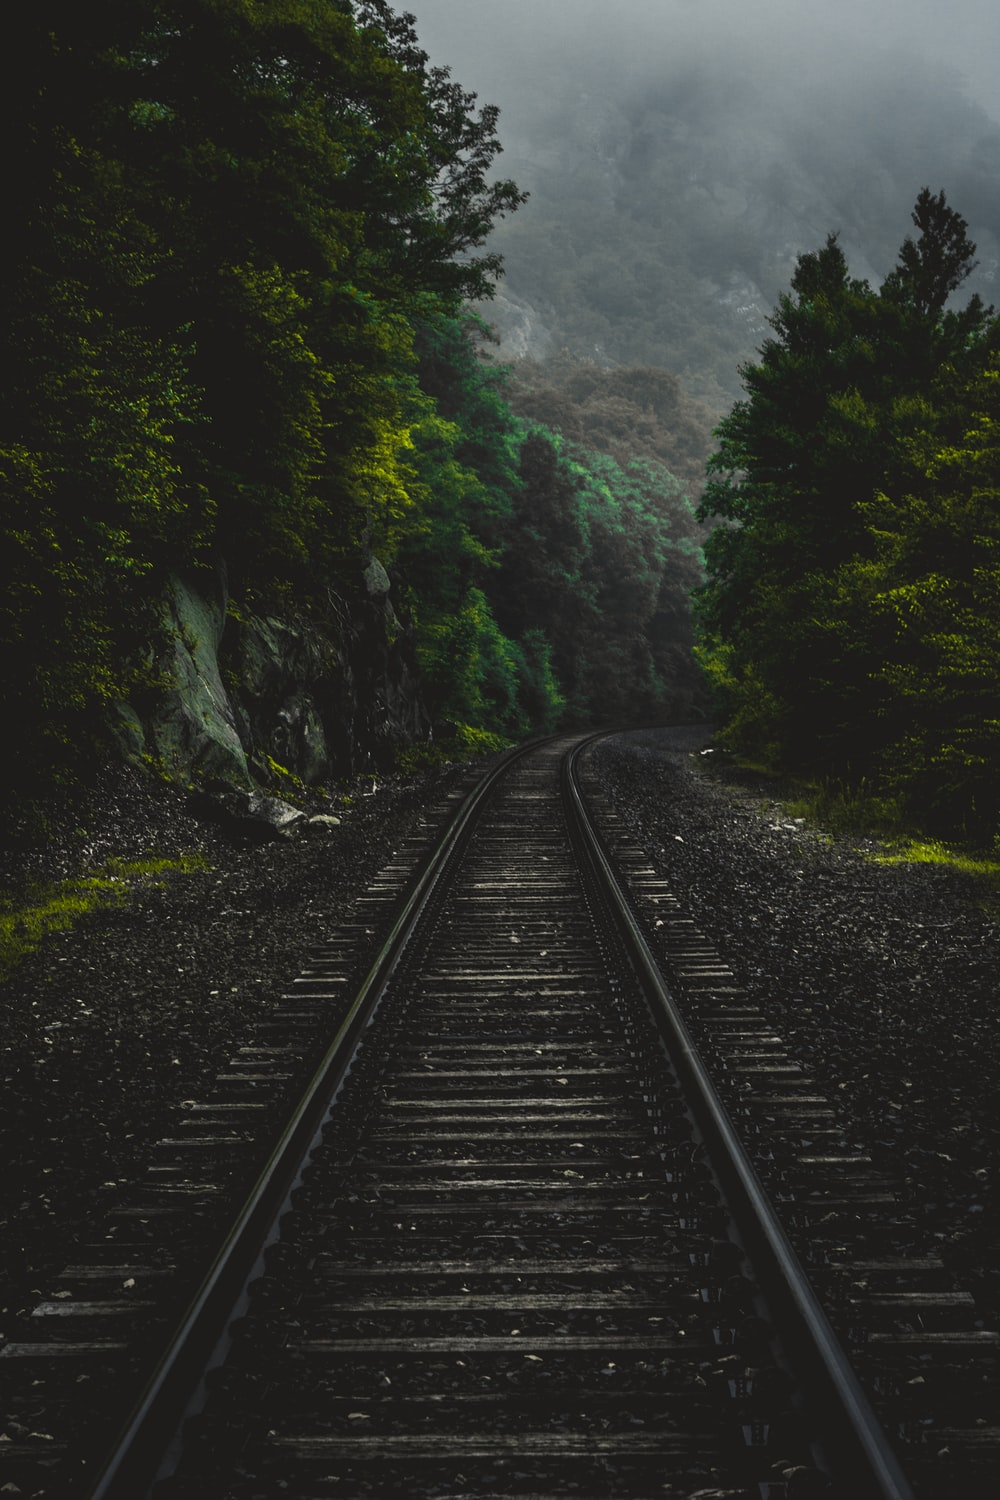 black railway surrounded by trees